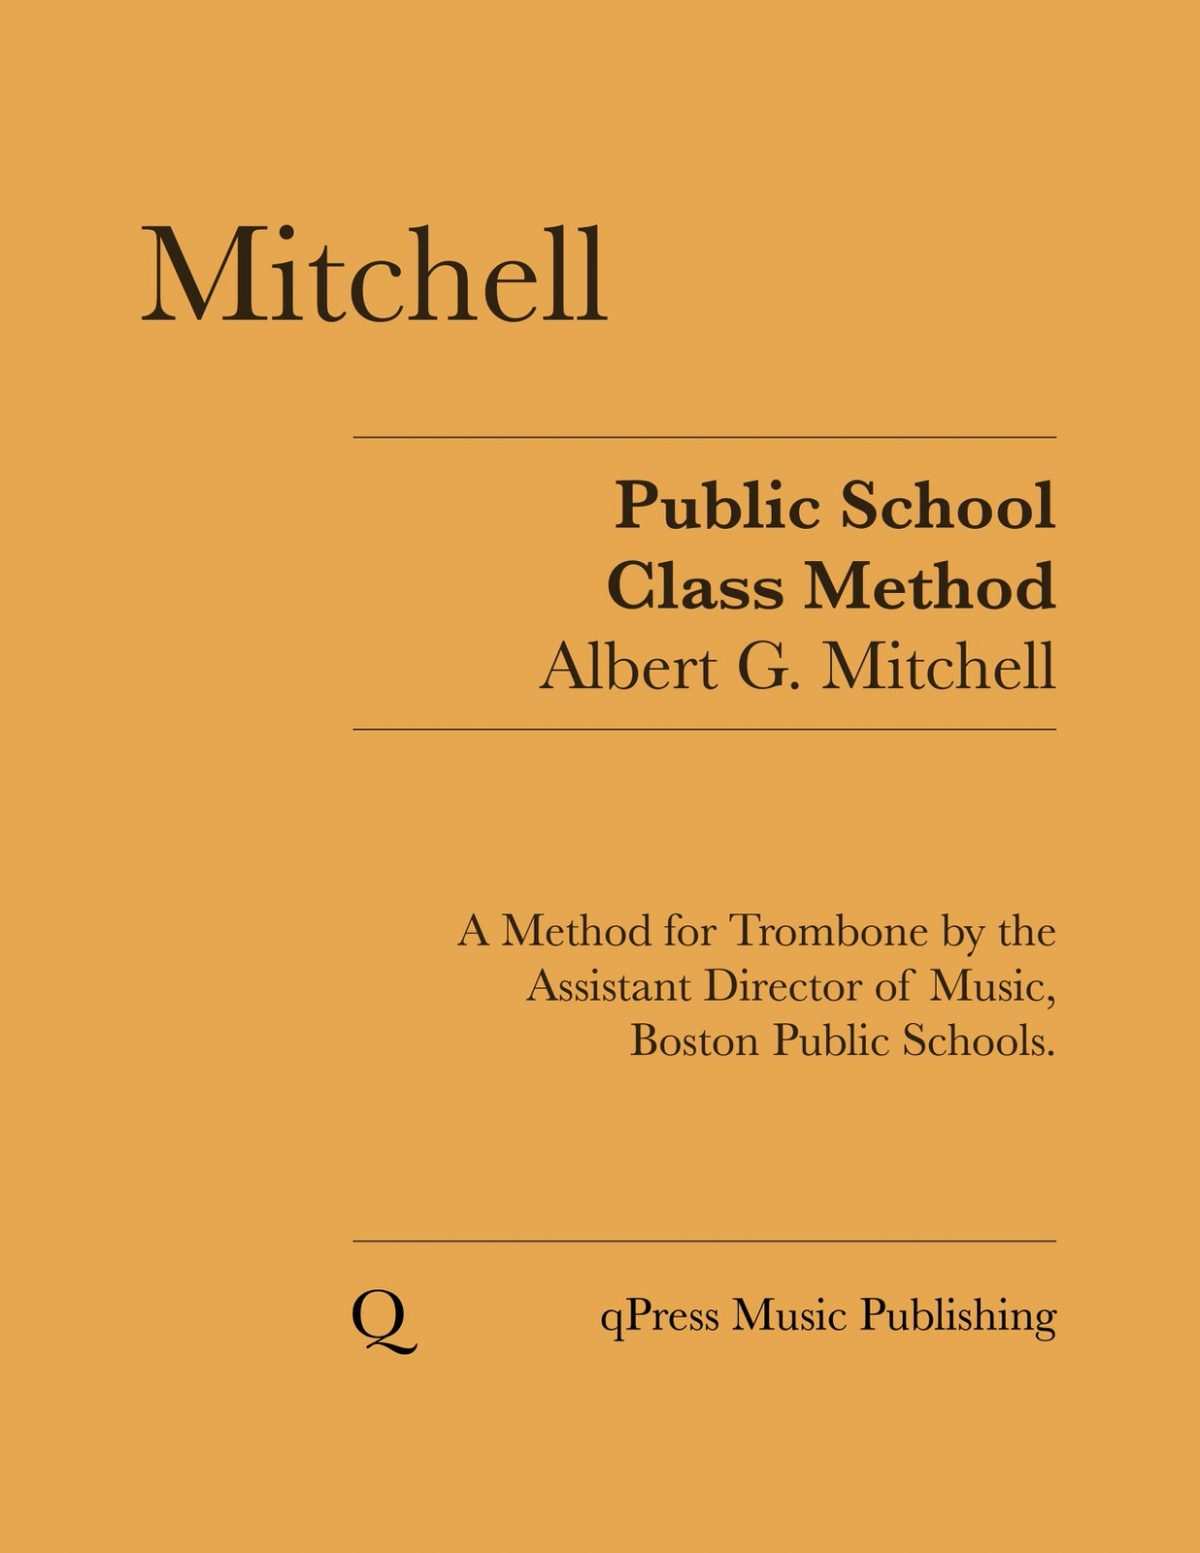 Mitchell, Public School Class Method for the Slide Trombone-p01